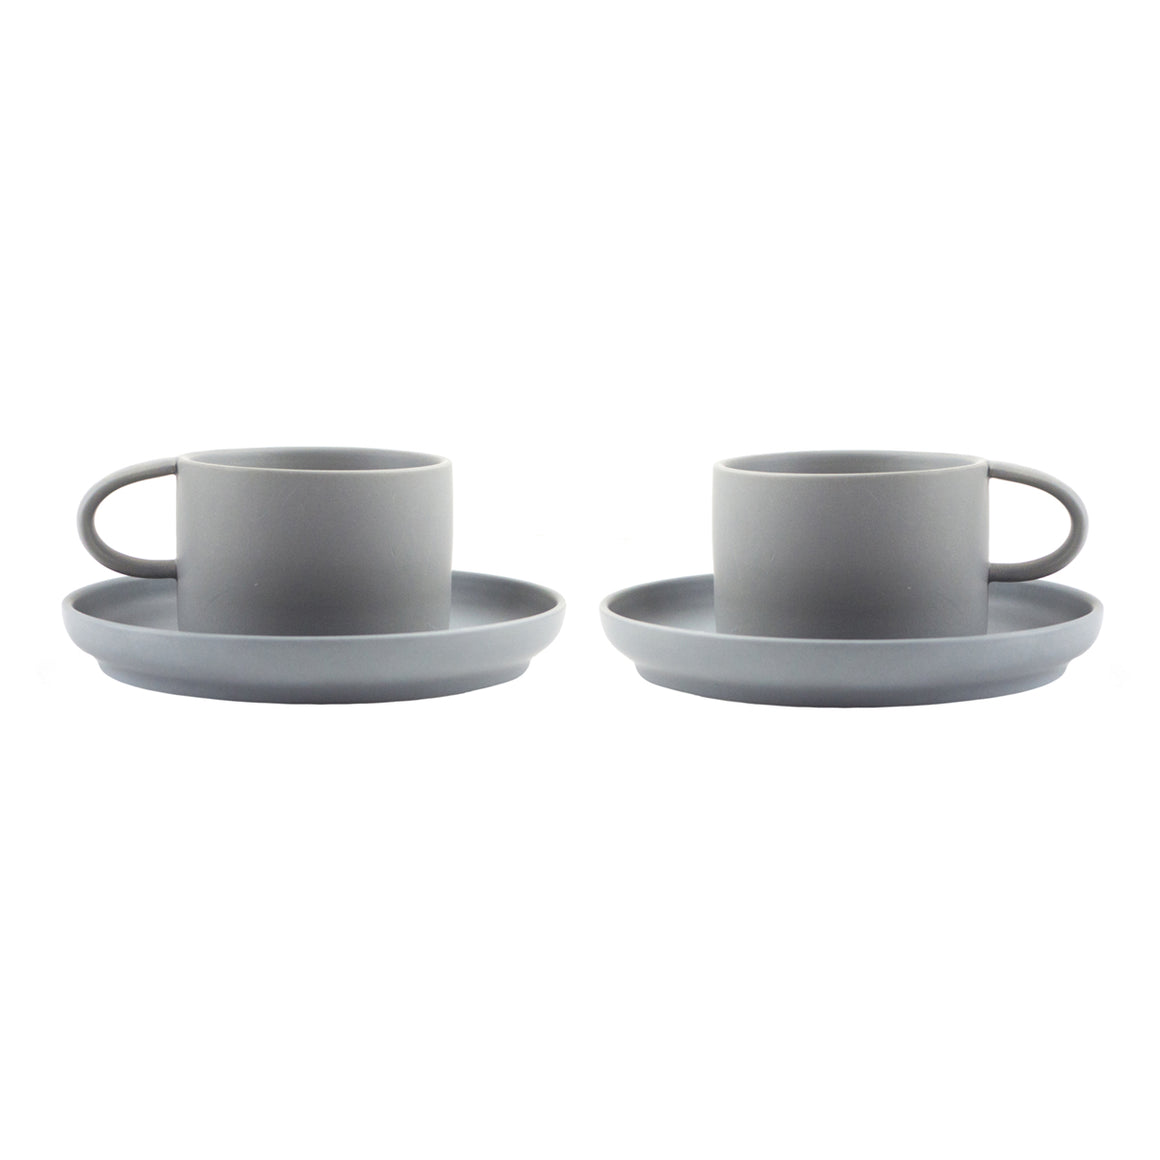 Nordic Design Cup & Saucer Set, 2 pack - Gray